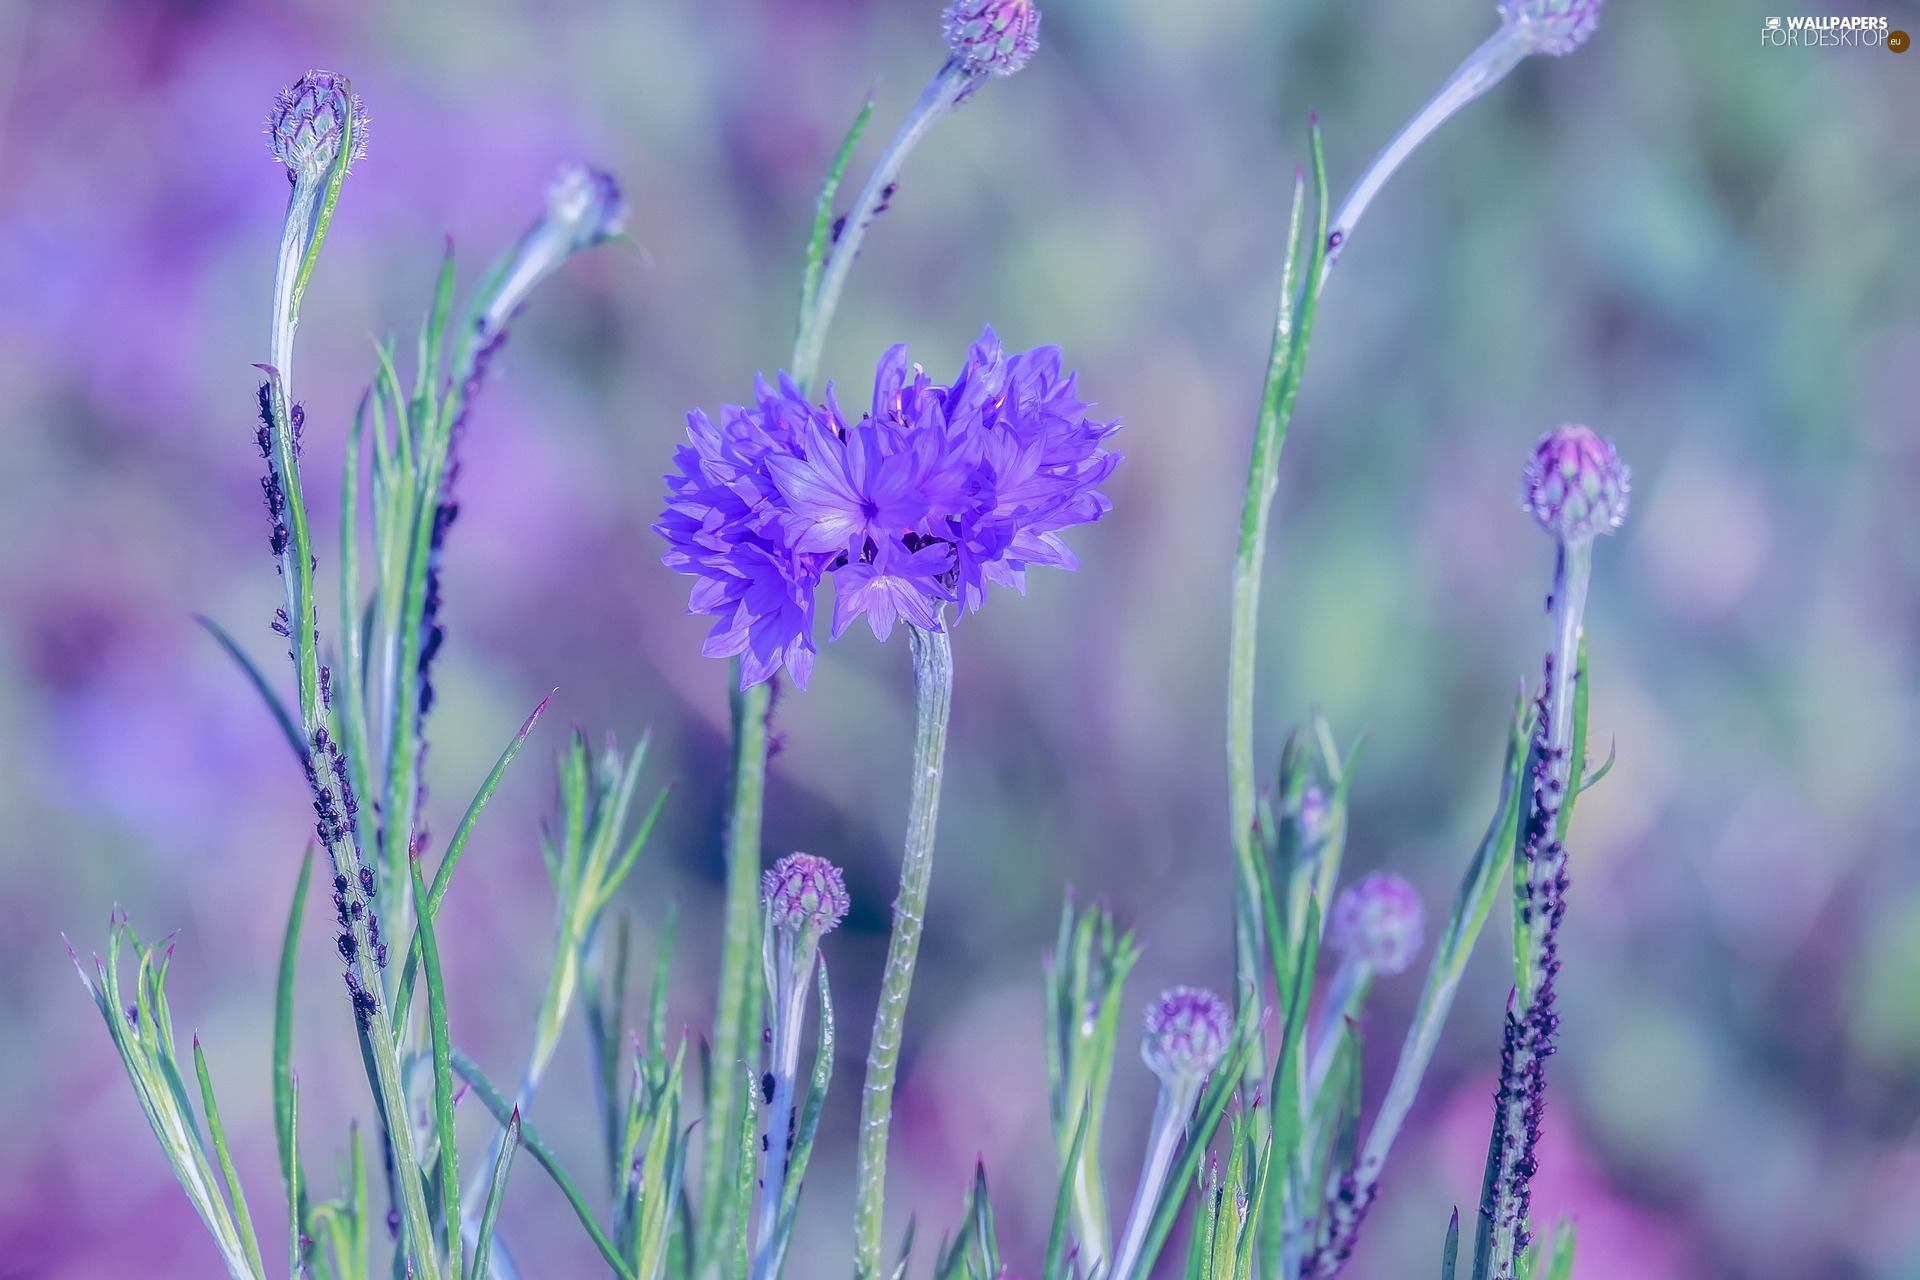 blurry background, cornflowers, insects